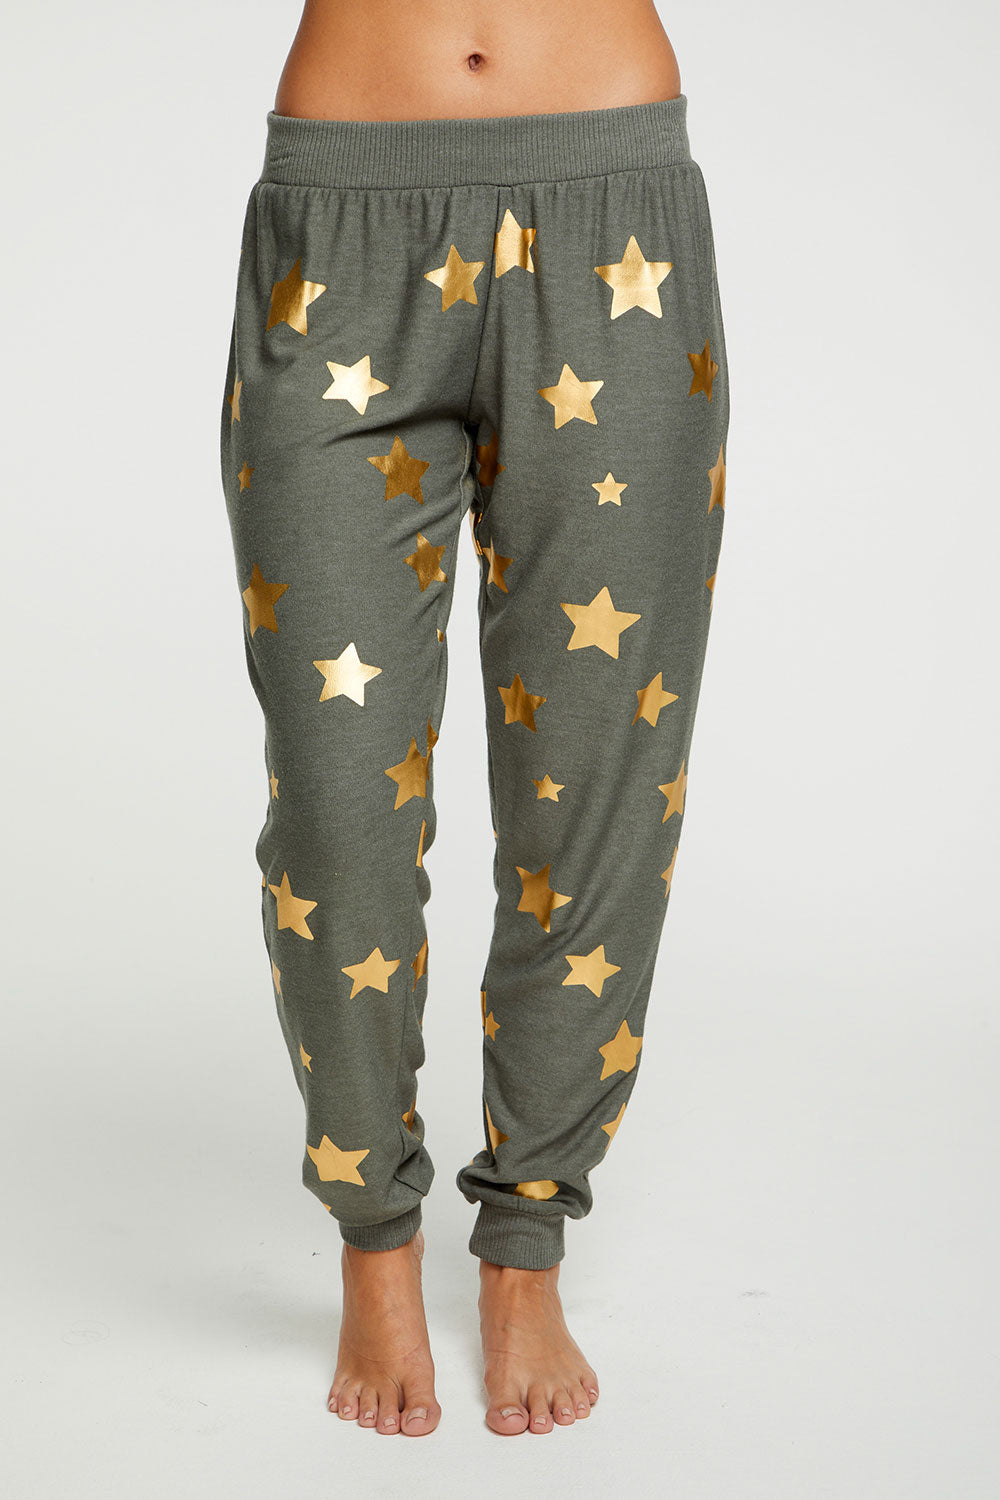 Gold Star Pants, WOMENS, chaserbrand.com,chaser clothing,chaser apparel,chaser los angeles